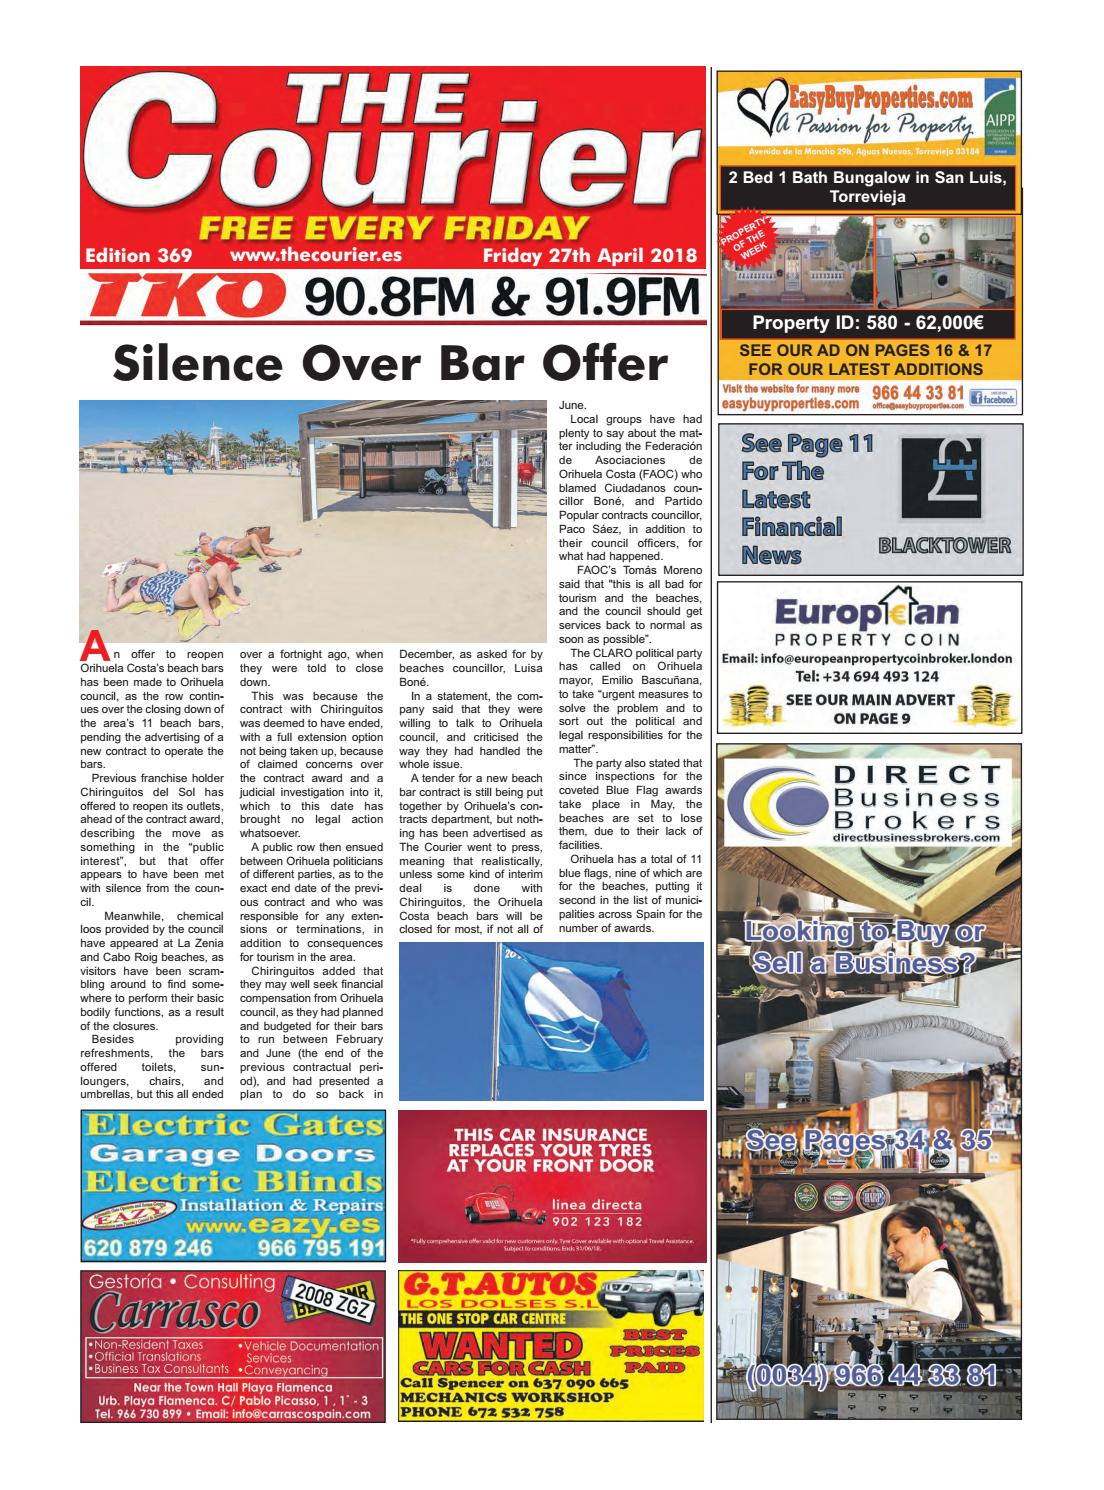 The Courier Edition 369 By The Courier Newspaper Issuu